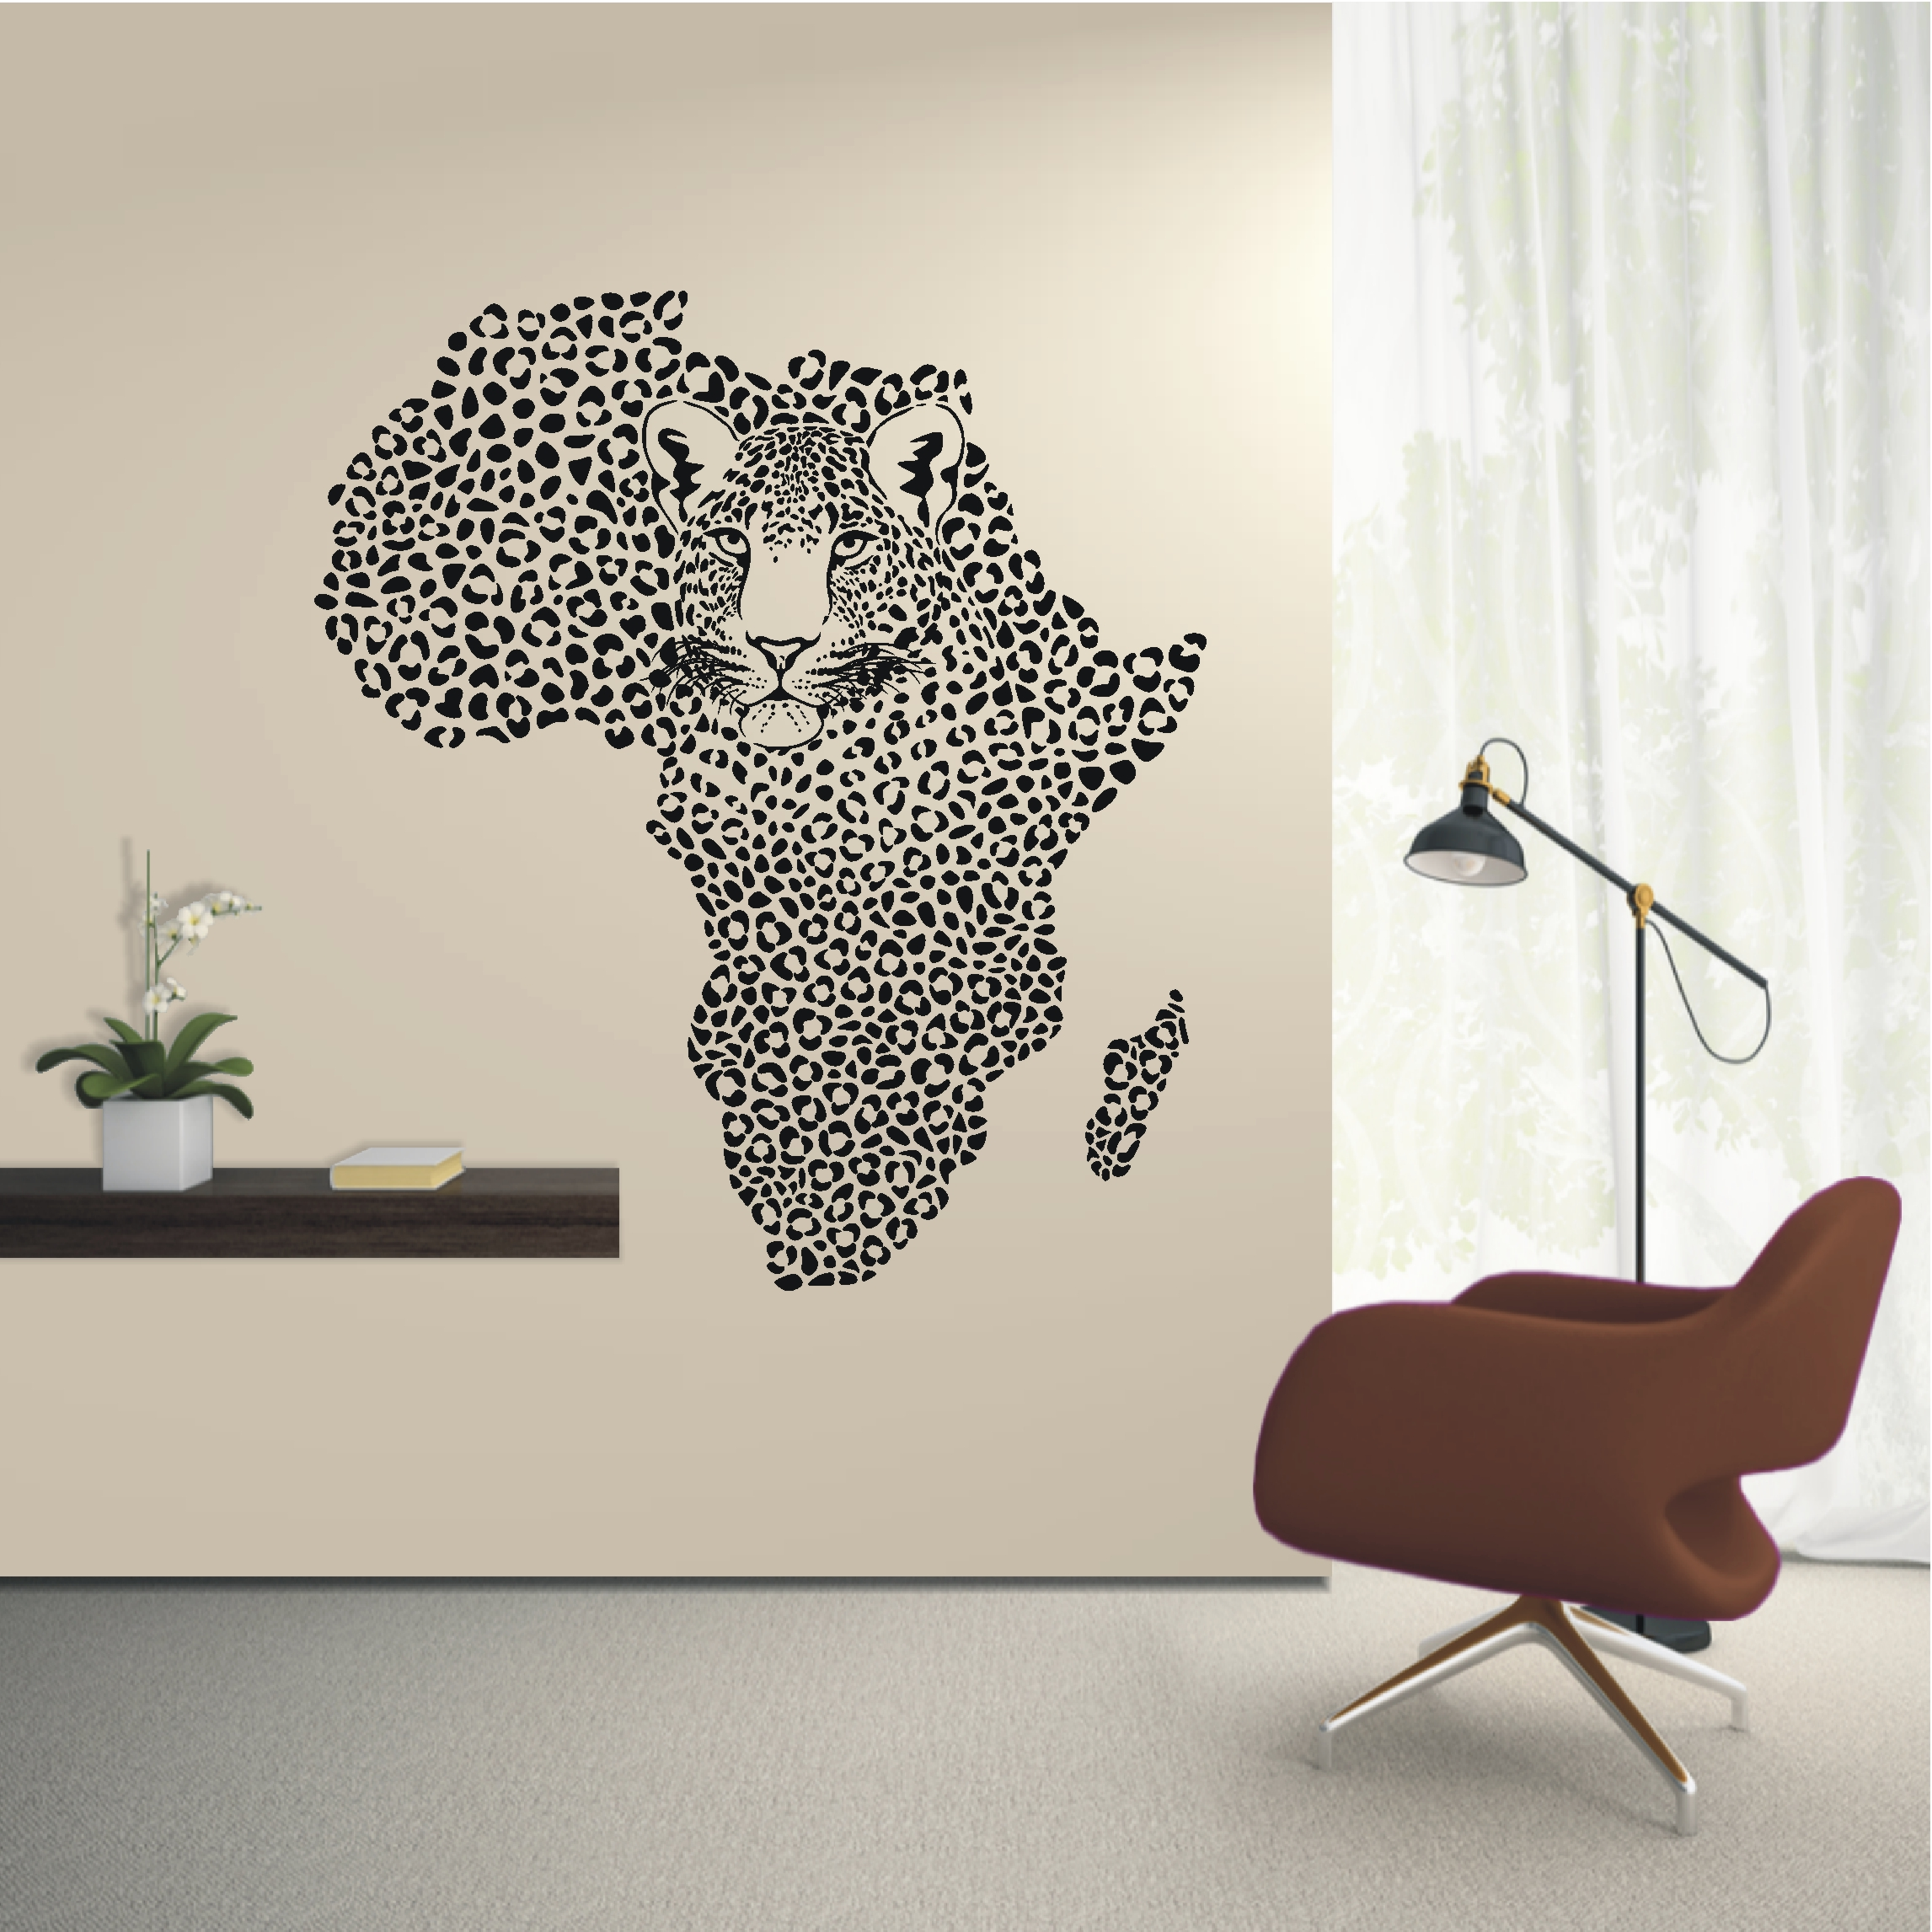 wandtattoo afrika reuniecollegenoetsele. Black Bedroom Furniture Sets. Home Design Ideas